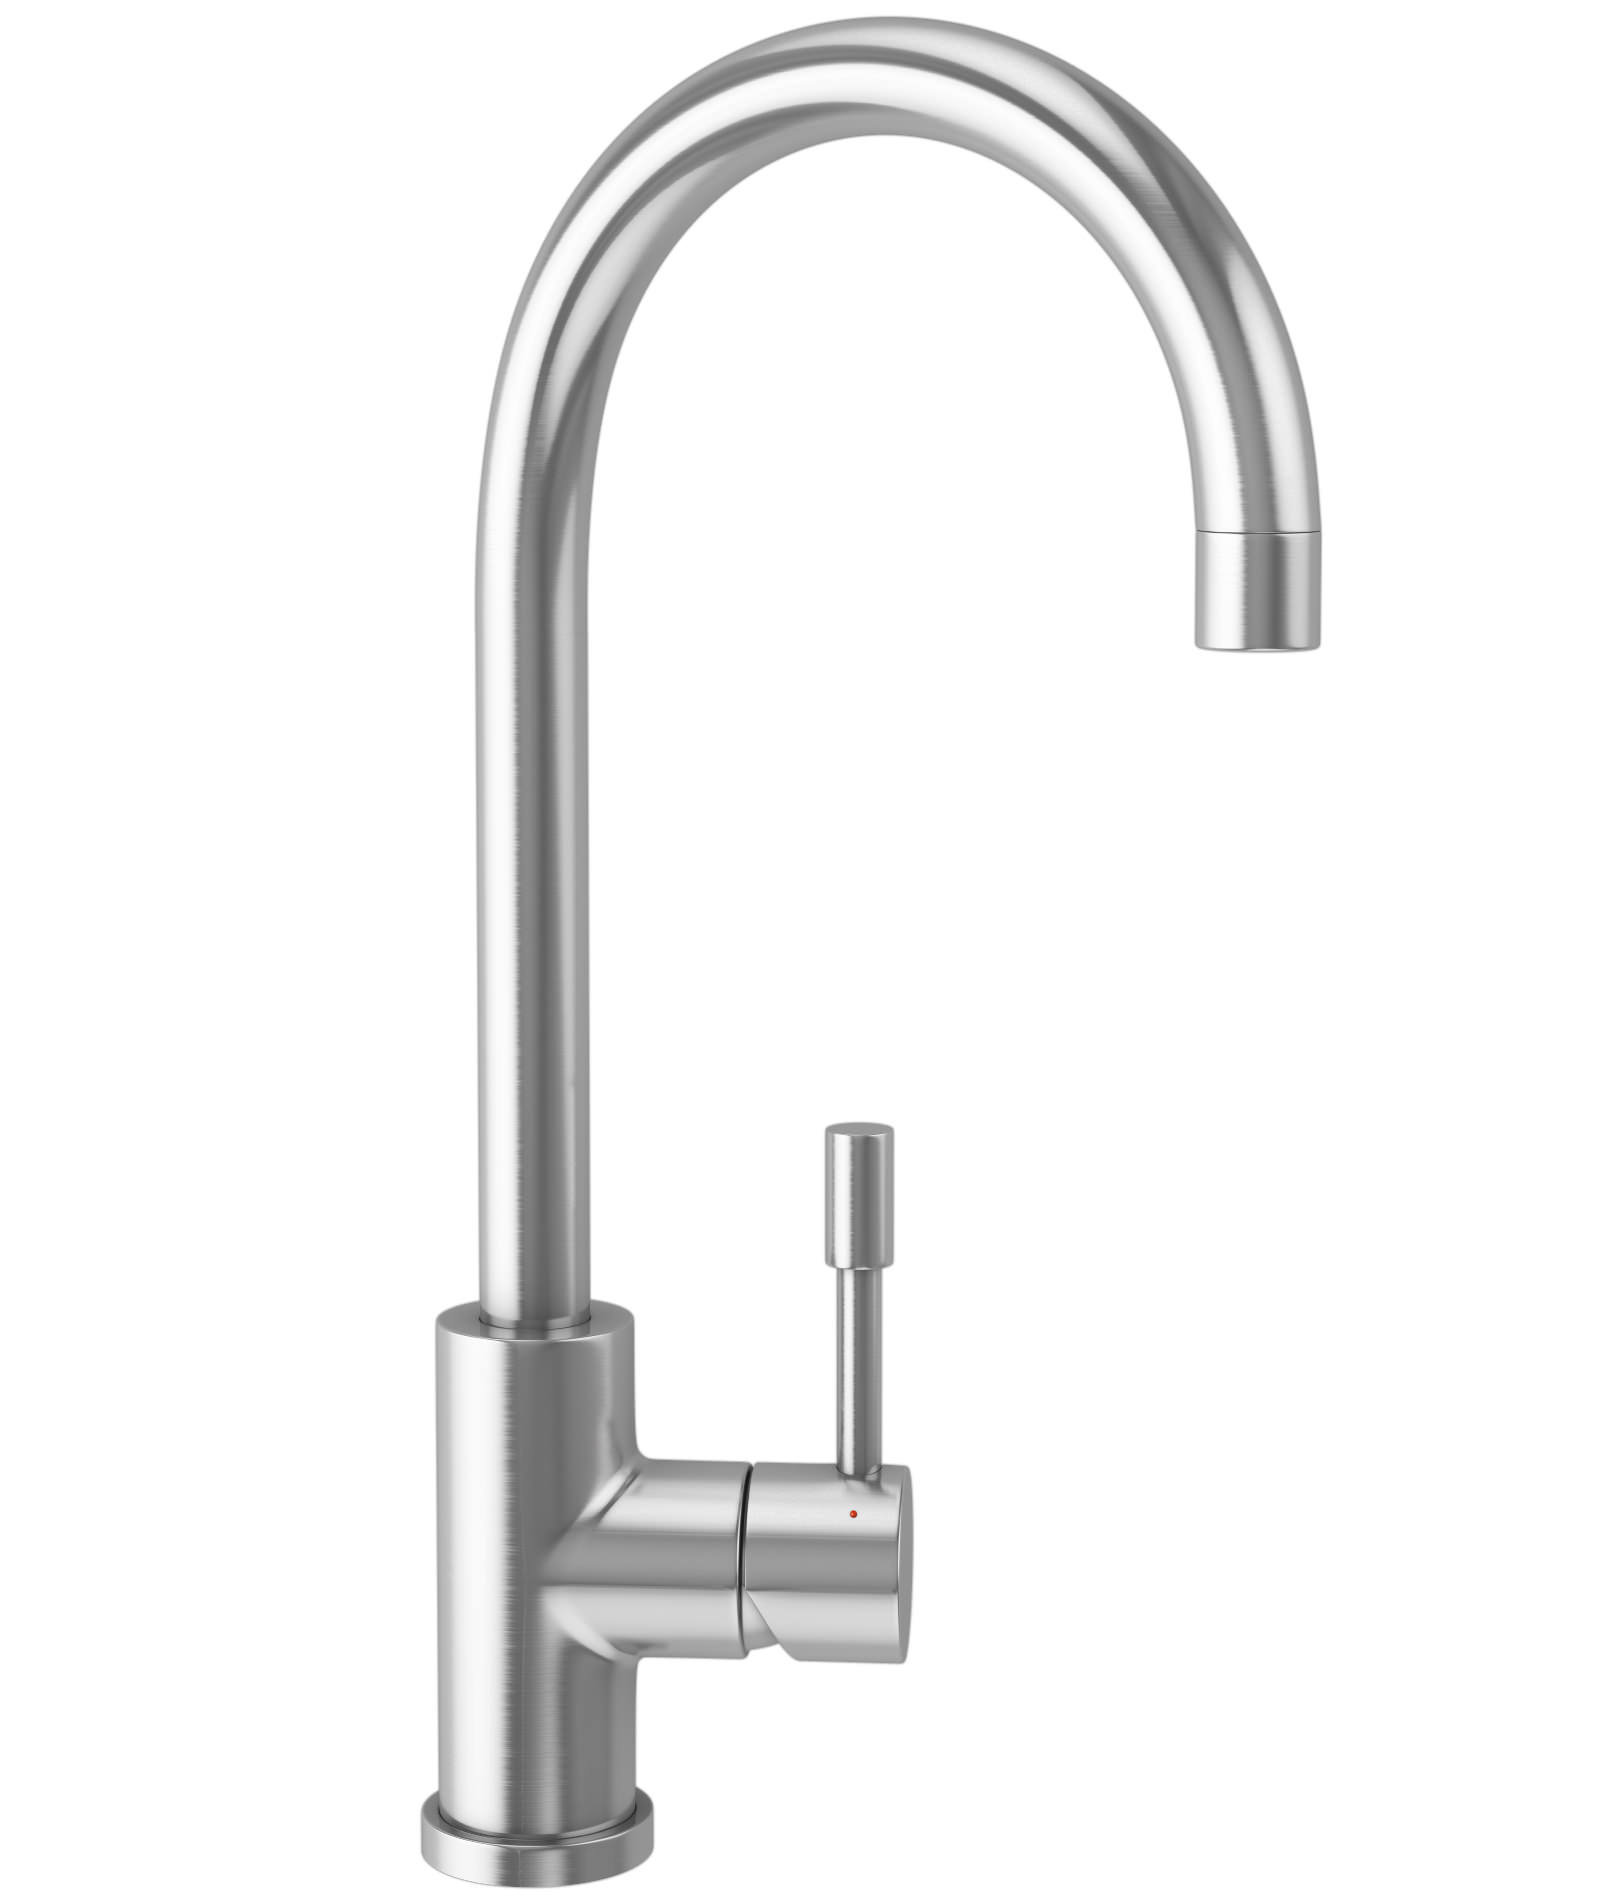 Sink Mixer Taps Franke Eos Kitchen Sink Mixer Tap Solid Stainless Steel